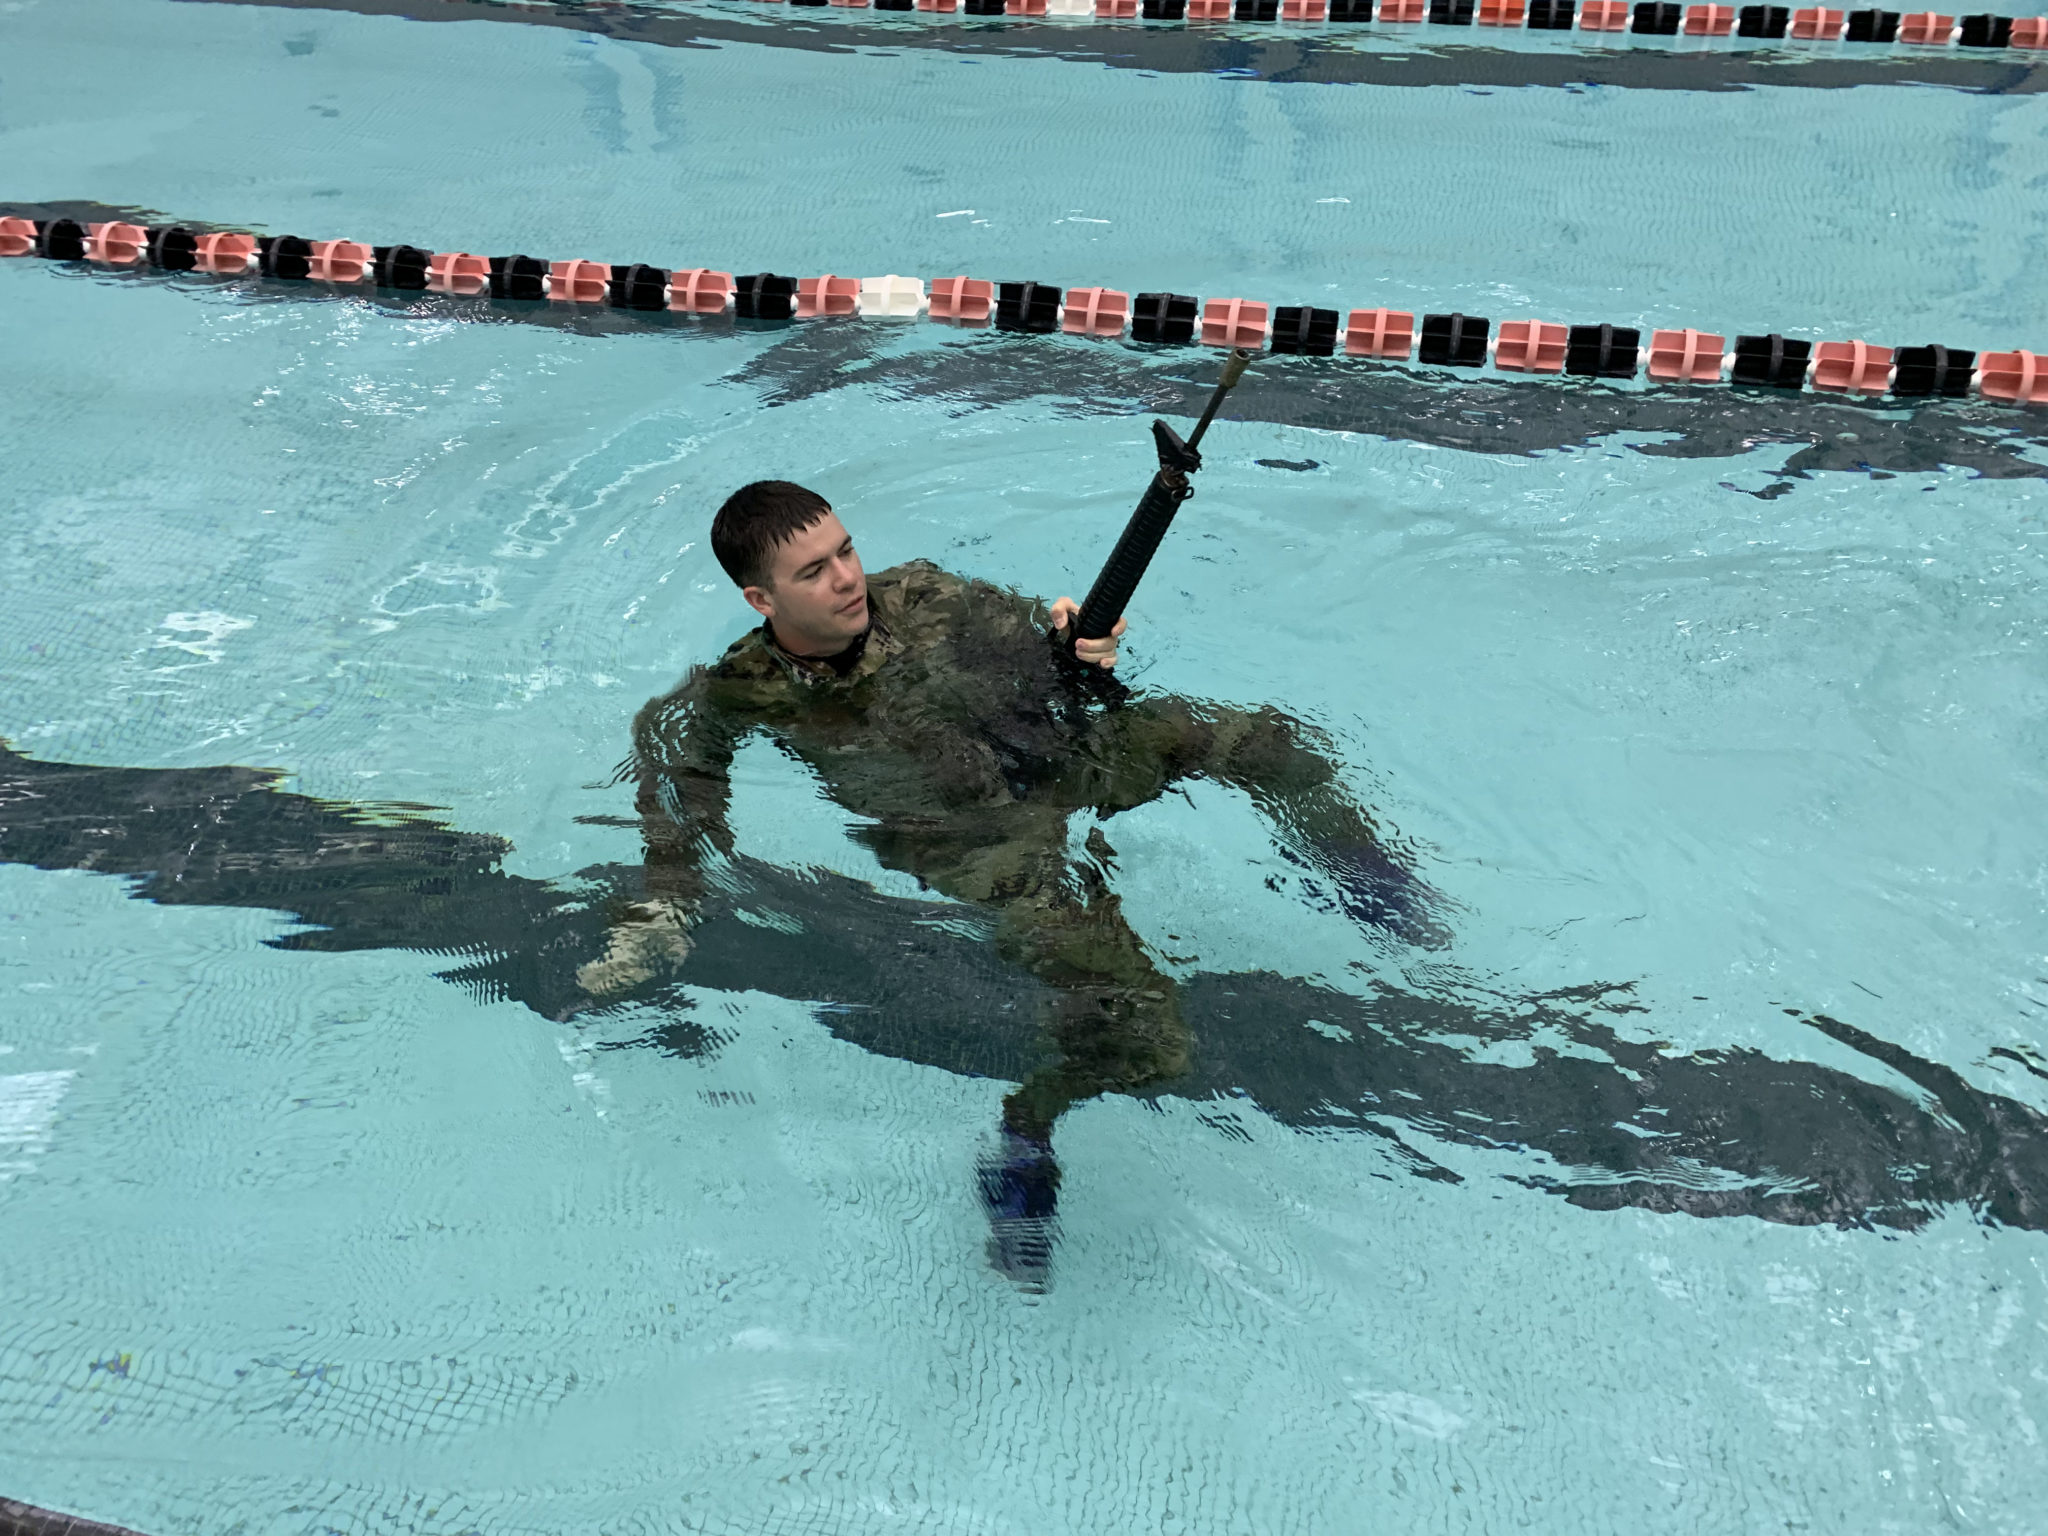 An ROTC cadet clothed in camo is in a pool